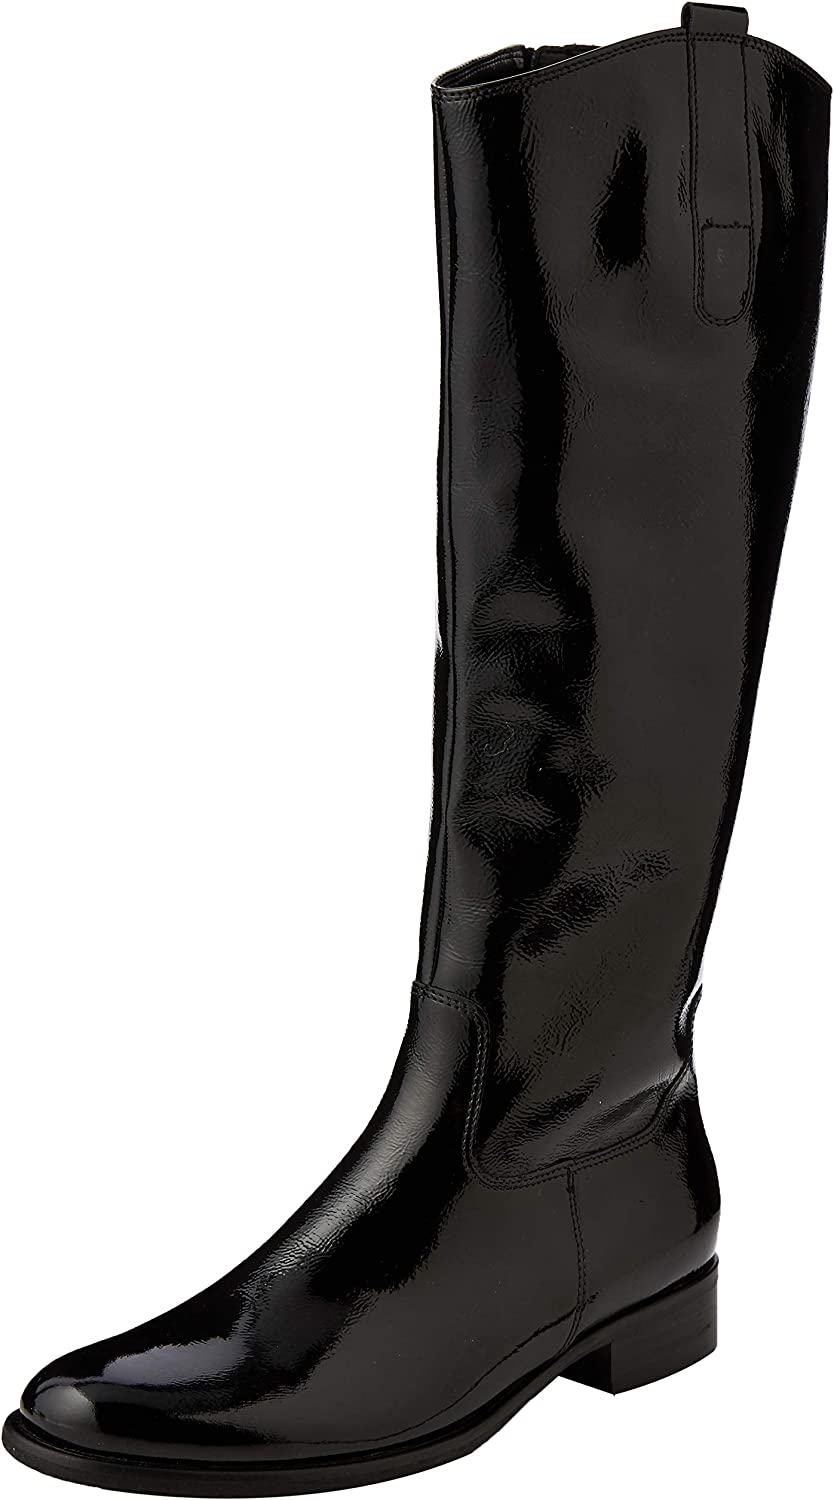 Gabor Women's Boots-31.649.97 High Boots